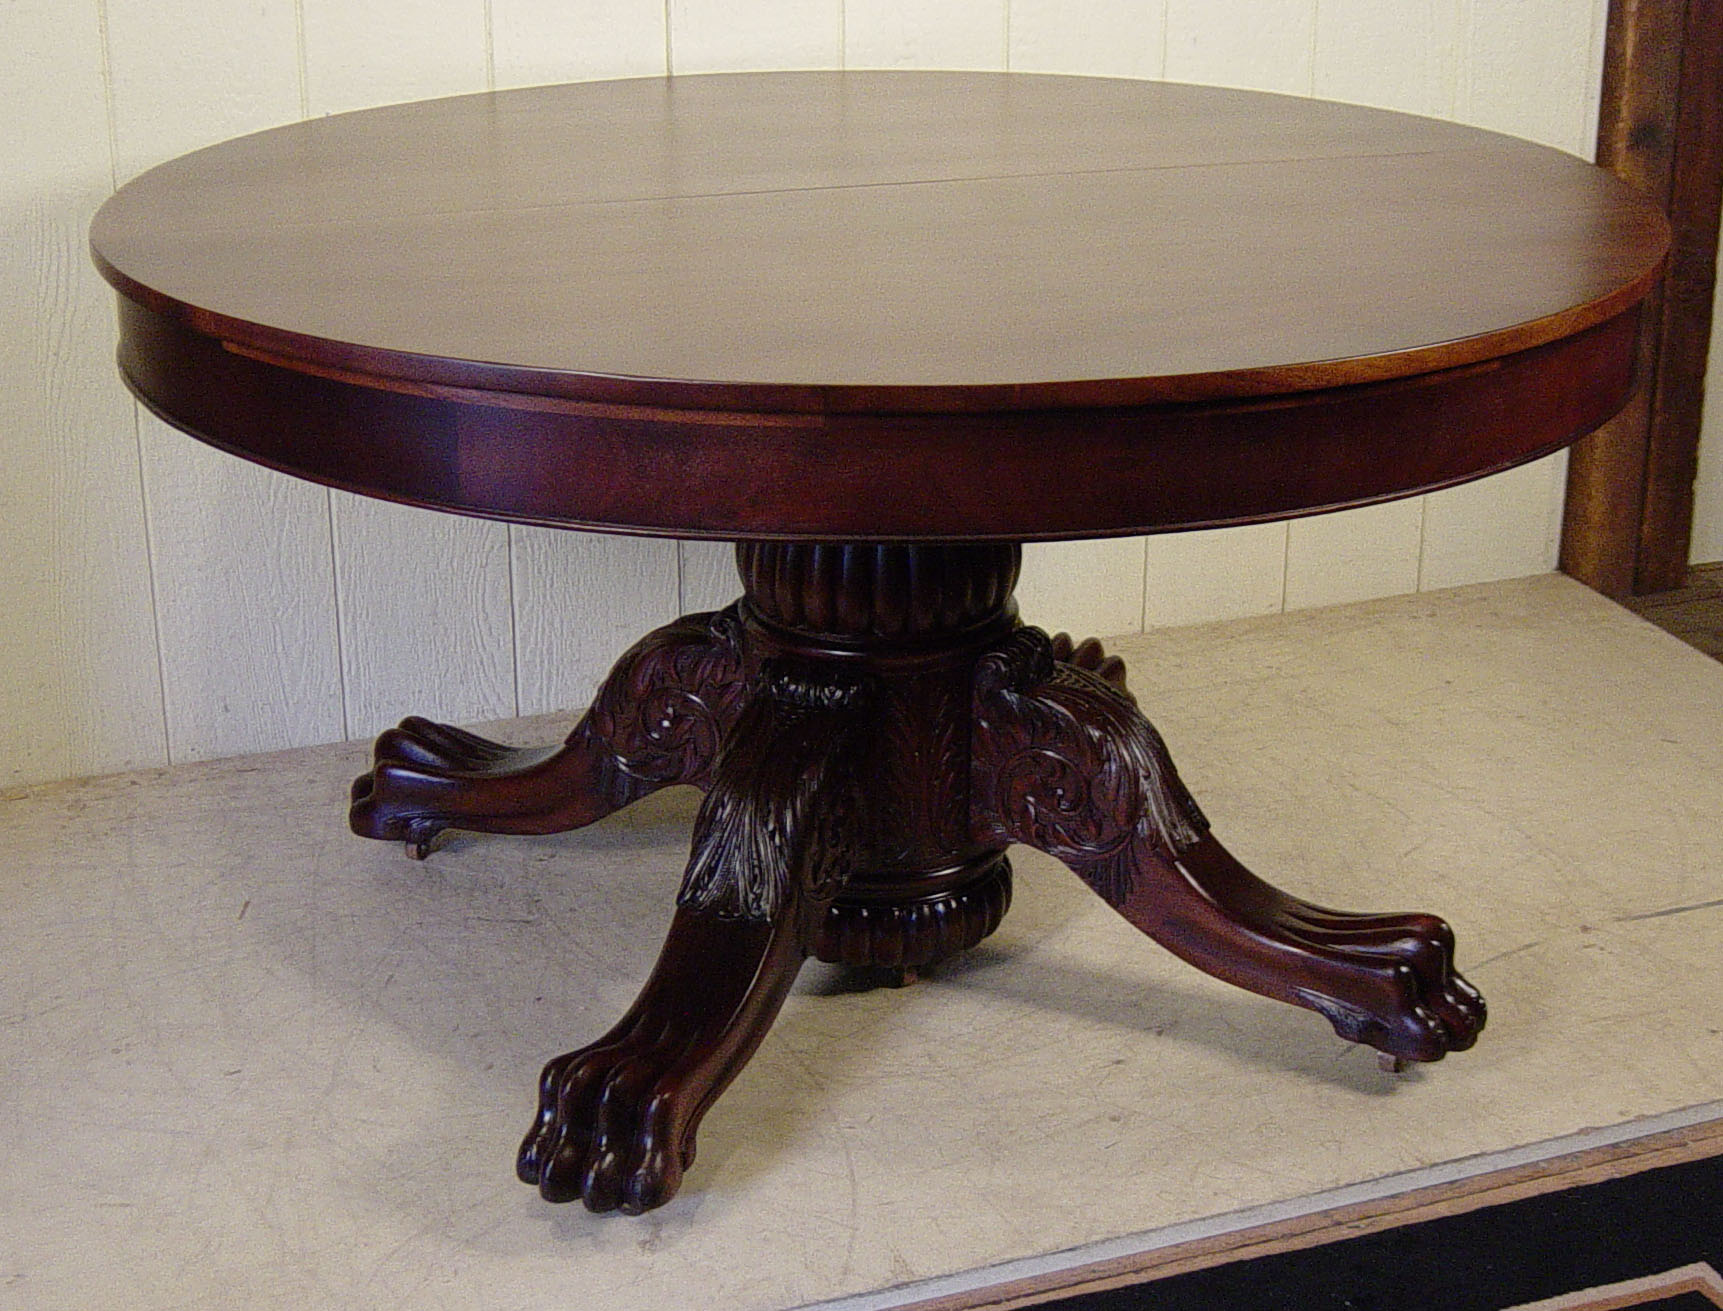 54quot Round Mahogany Claw foot Table with 4 orignal 16quot leaves : DSC00004 from www.dougschmittantiques.com size 1723 x 1311 jpeg 400kB